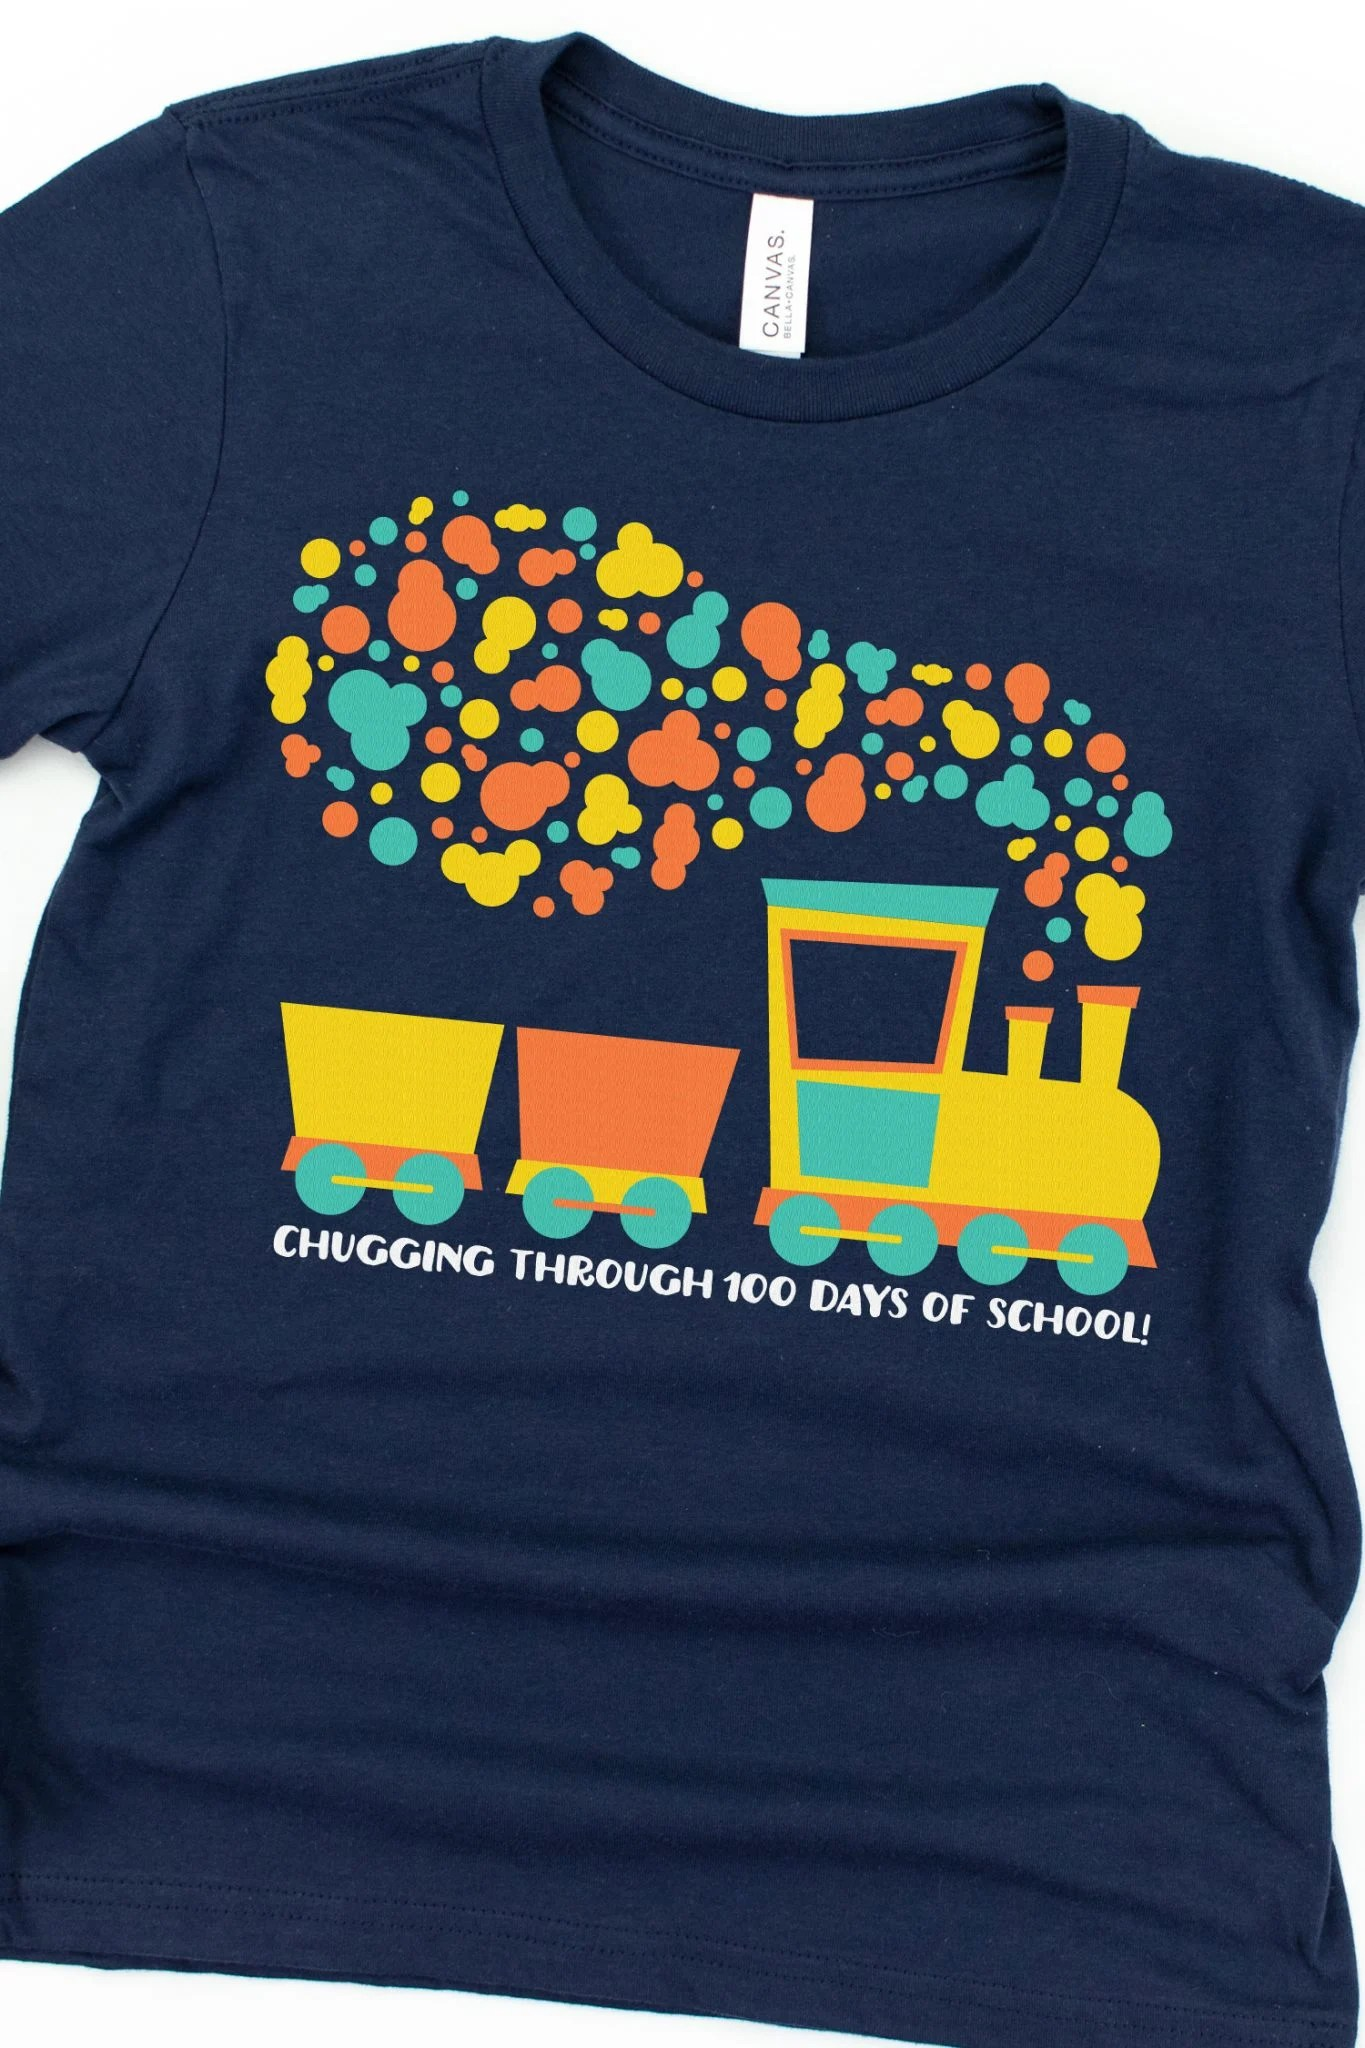 hight resolution of 100 Days of School SVGs for Shirts + More! - Hey